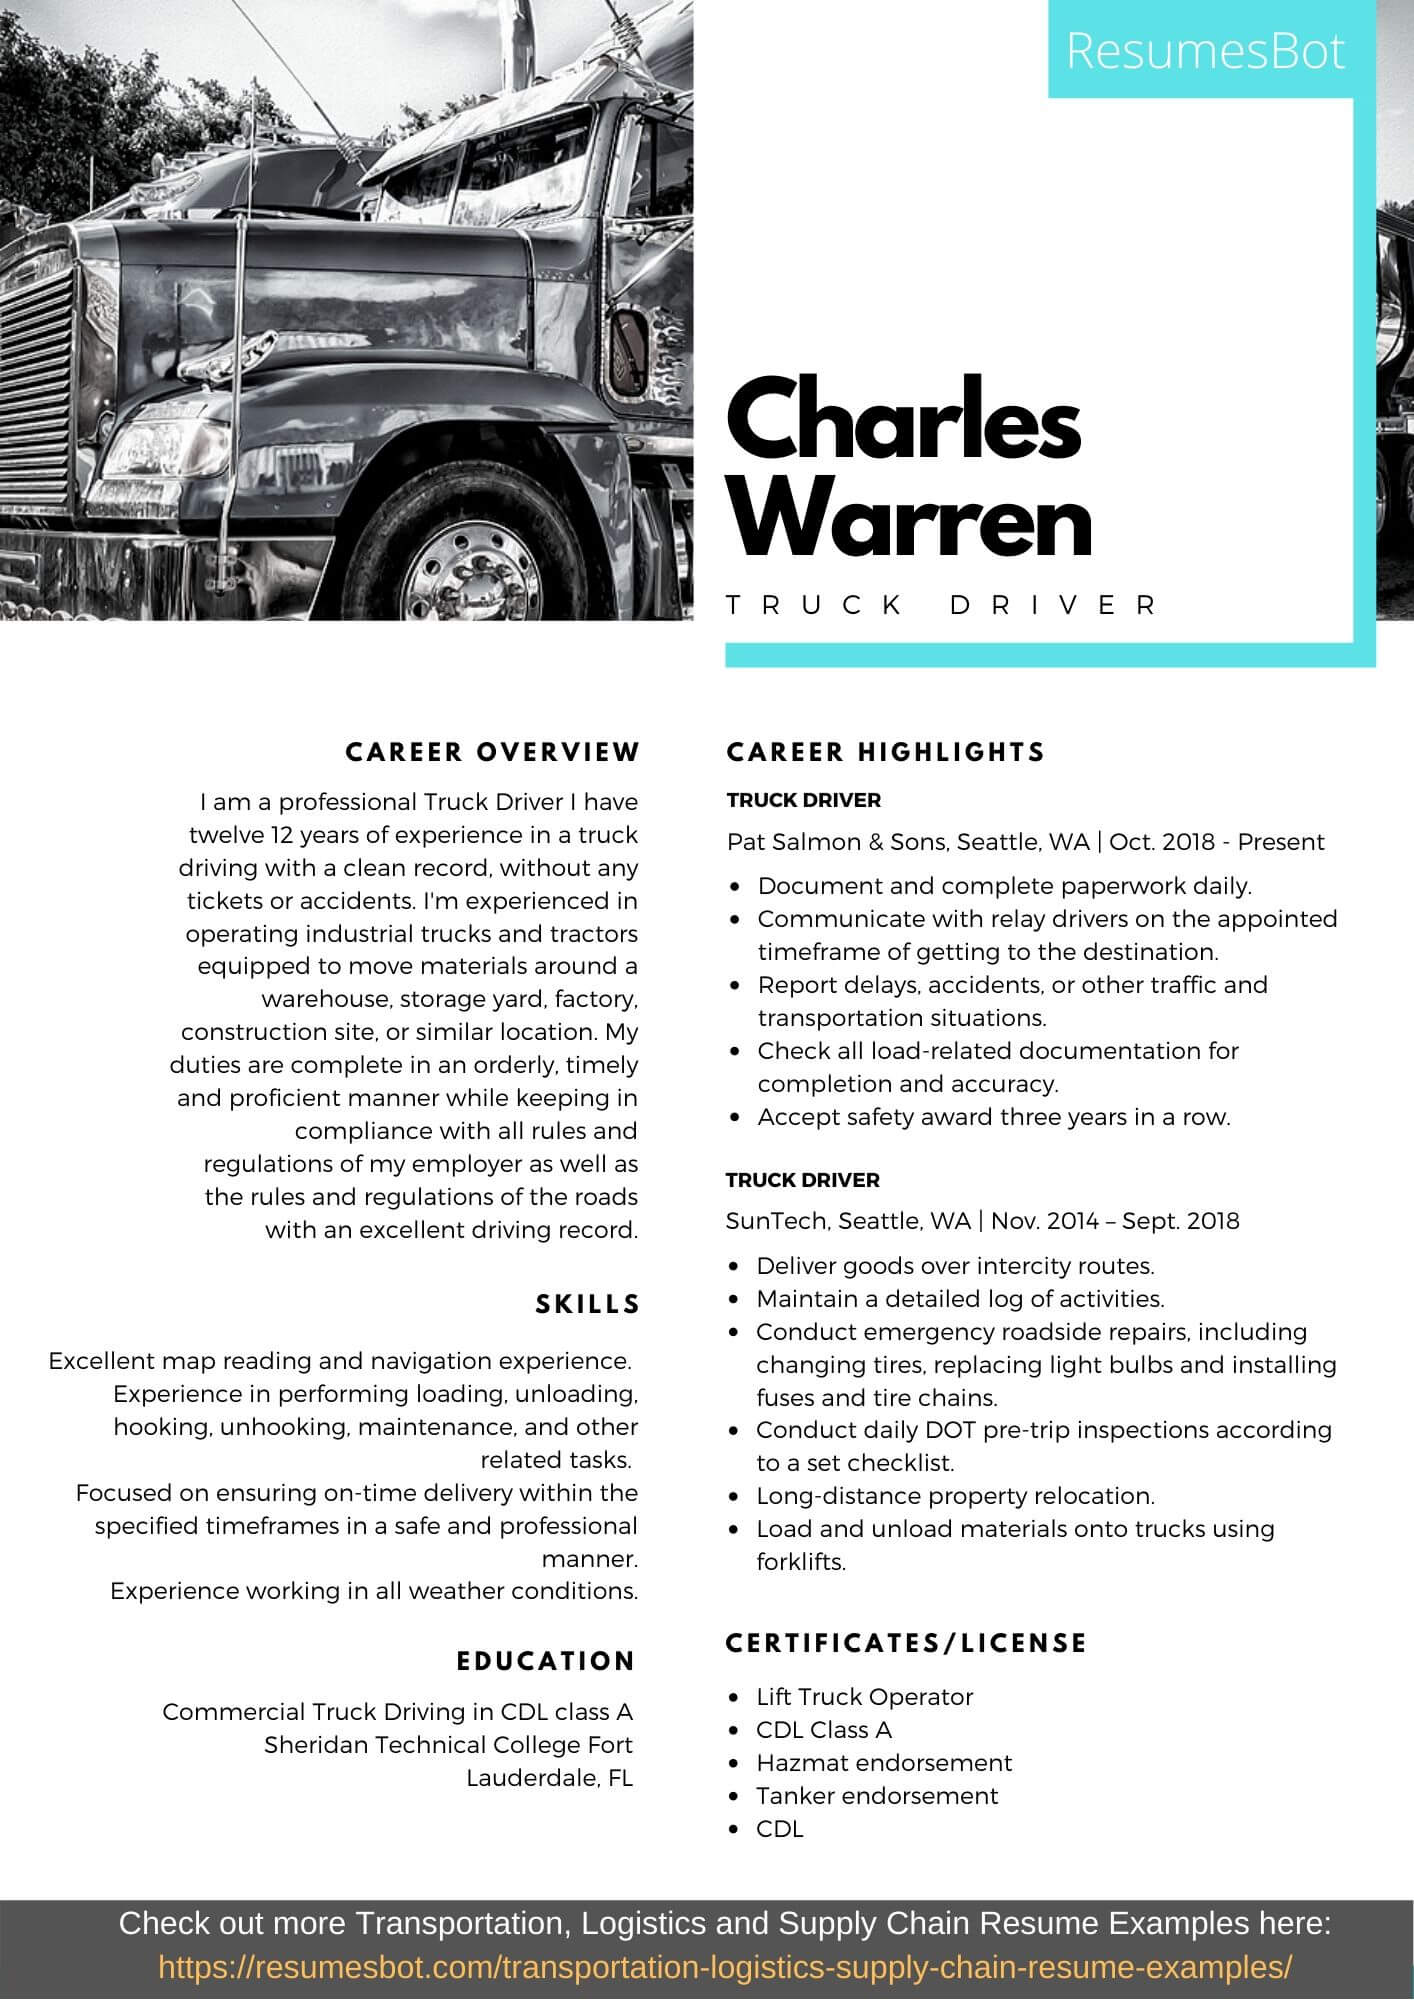 truck driver resume samples and tips pdf resumes bot trucking objective example Resume Trucking Resume Objective